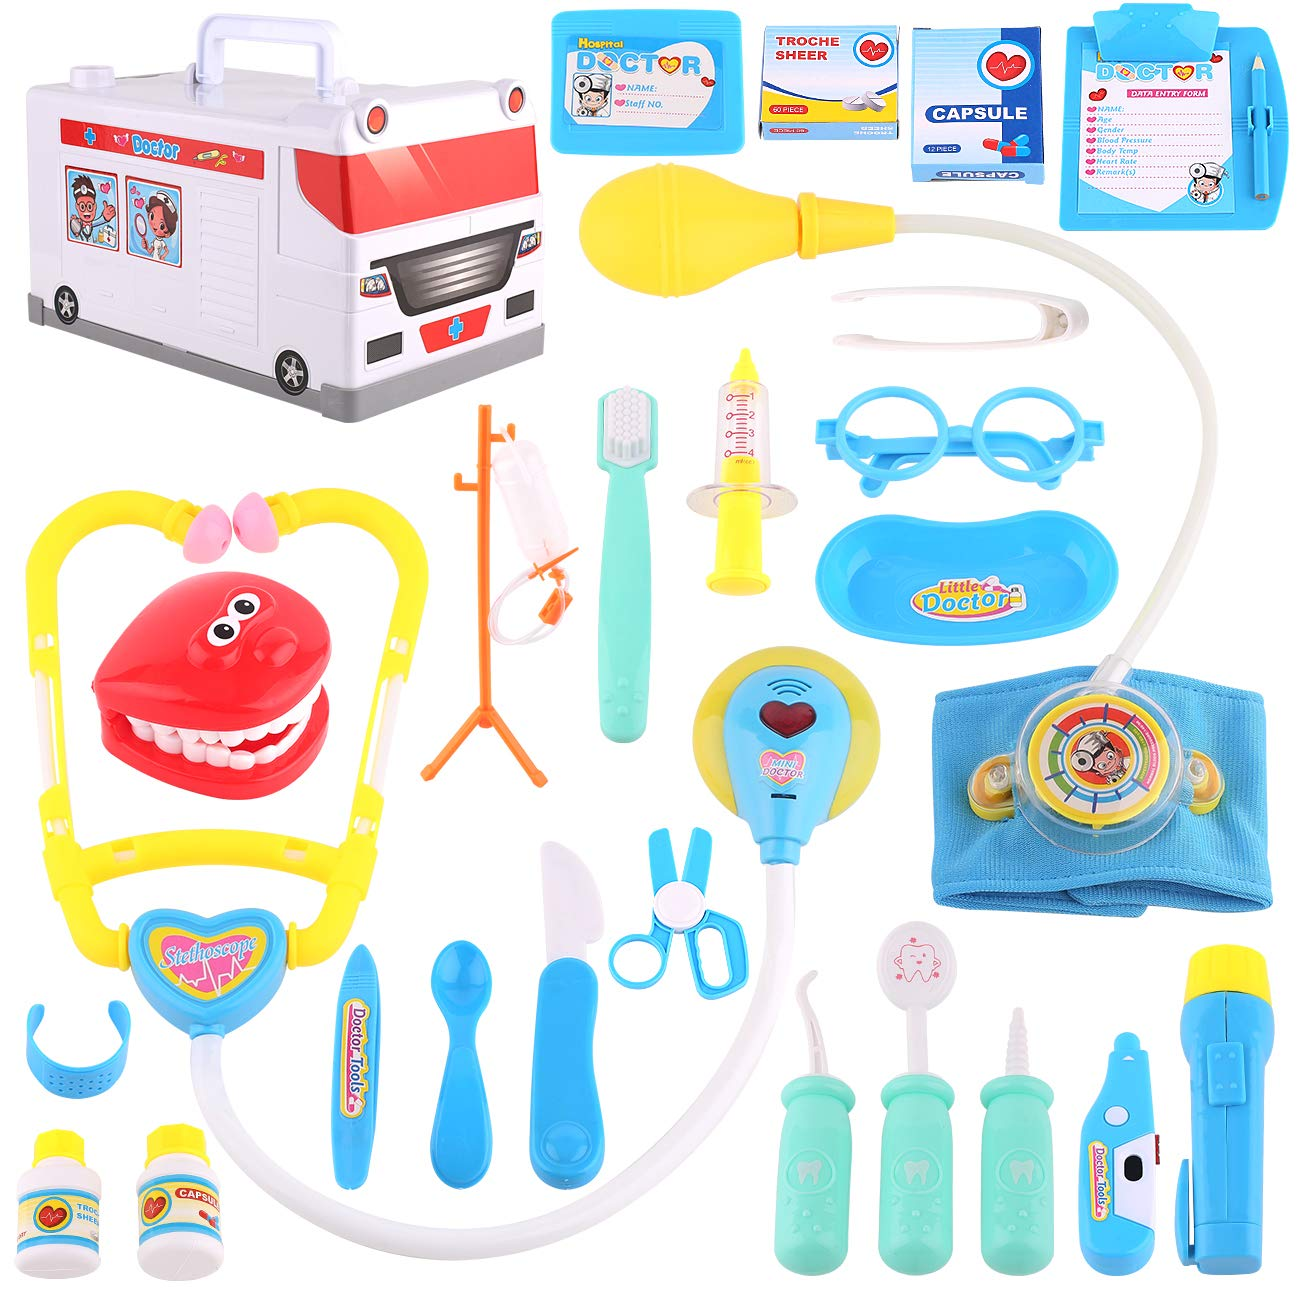 Kids Doctor Kit, Toy Doctor Set for Toddlers,25pcs,Durable Medical Pretend Play Toy Set, Birthday Gift for Toddlers,Boys,Girls, Party and Role Play